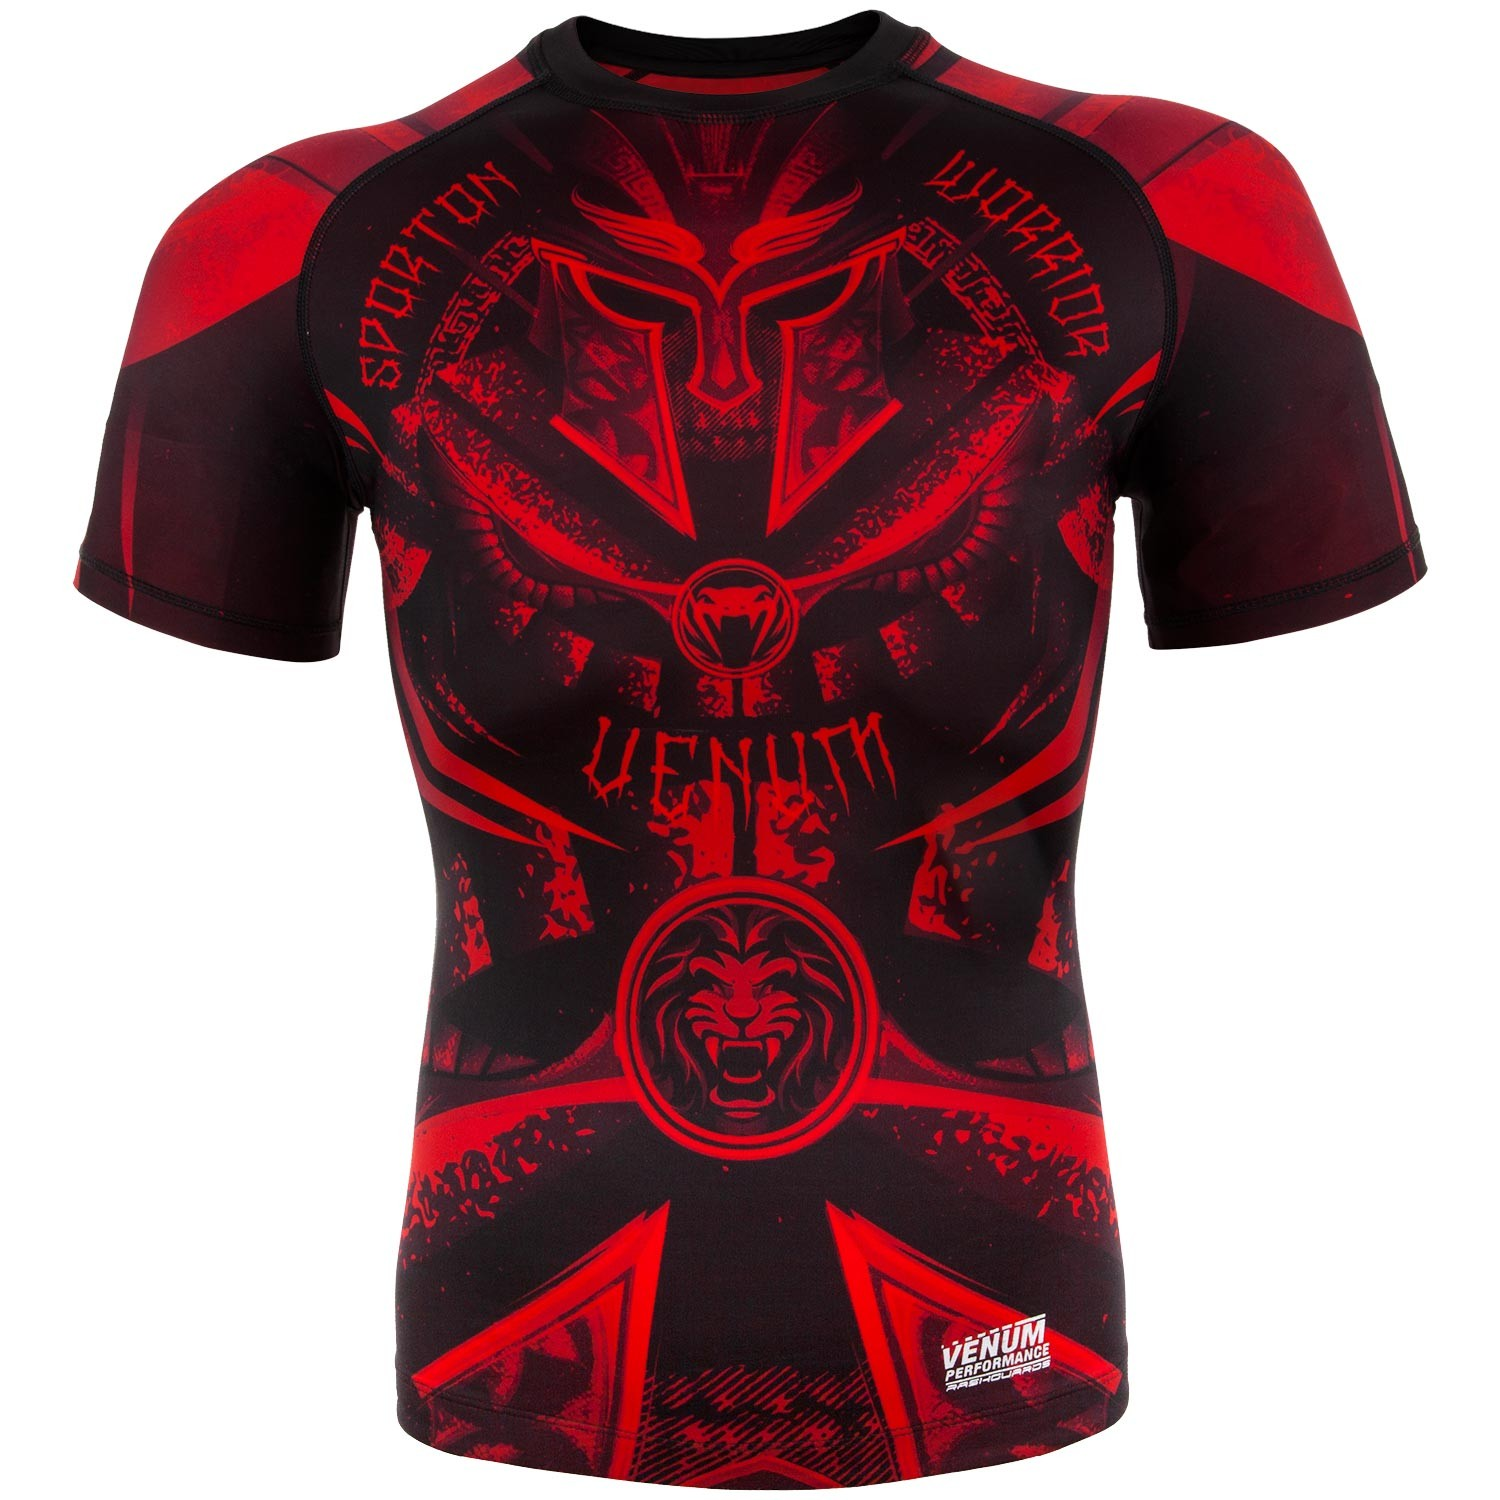 Рашгард Venum Gladiator Black/Red S/S<br>Вес кг: 200.00000000;